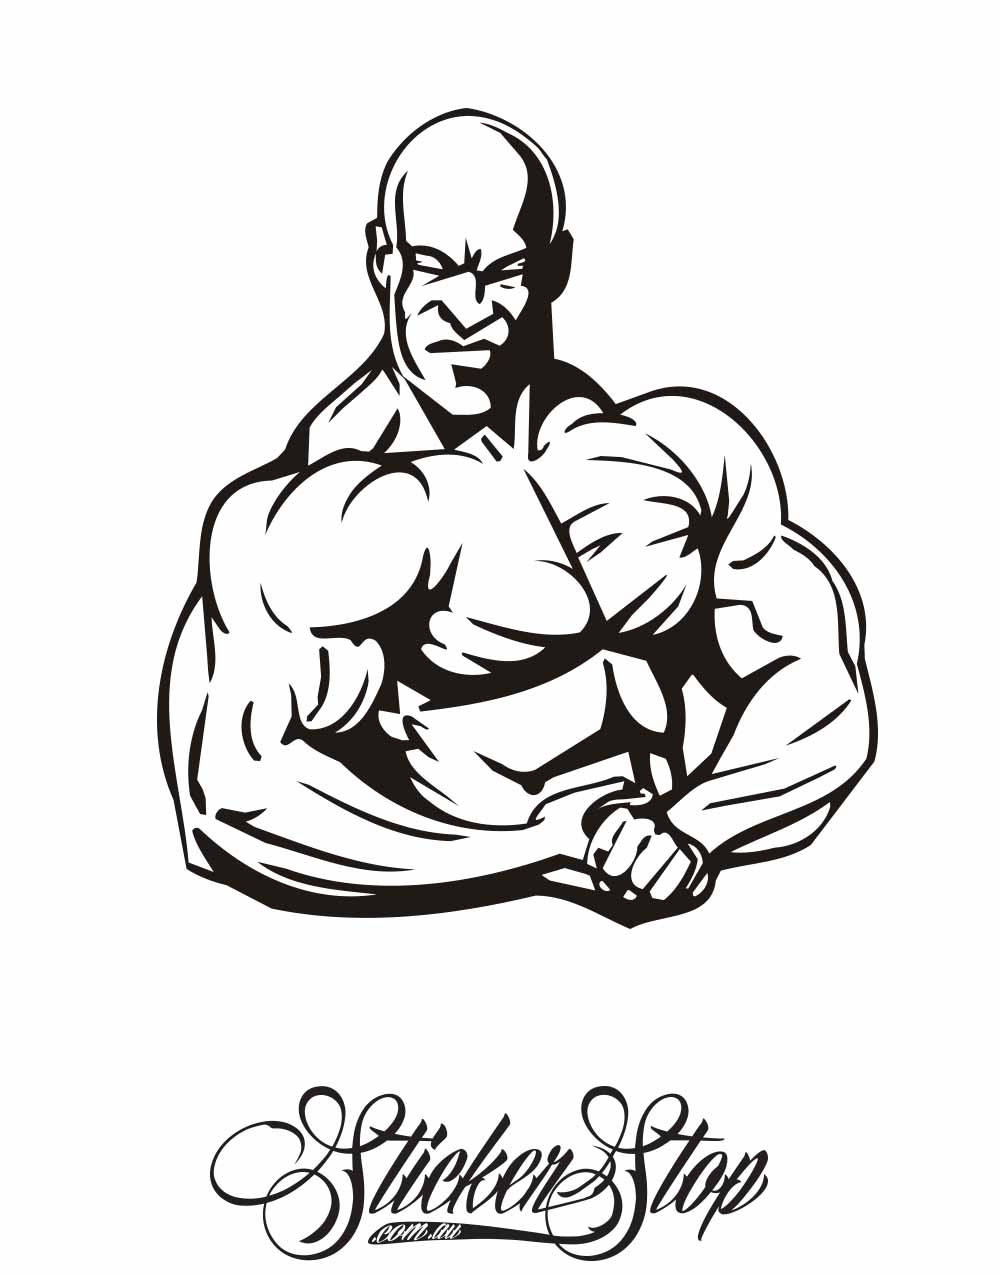 Bodybuilding Fitness Vinyl Sticker | Weather-proof | 8-year life